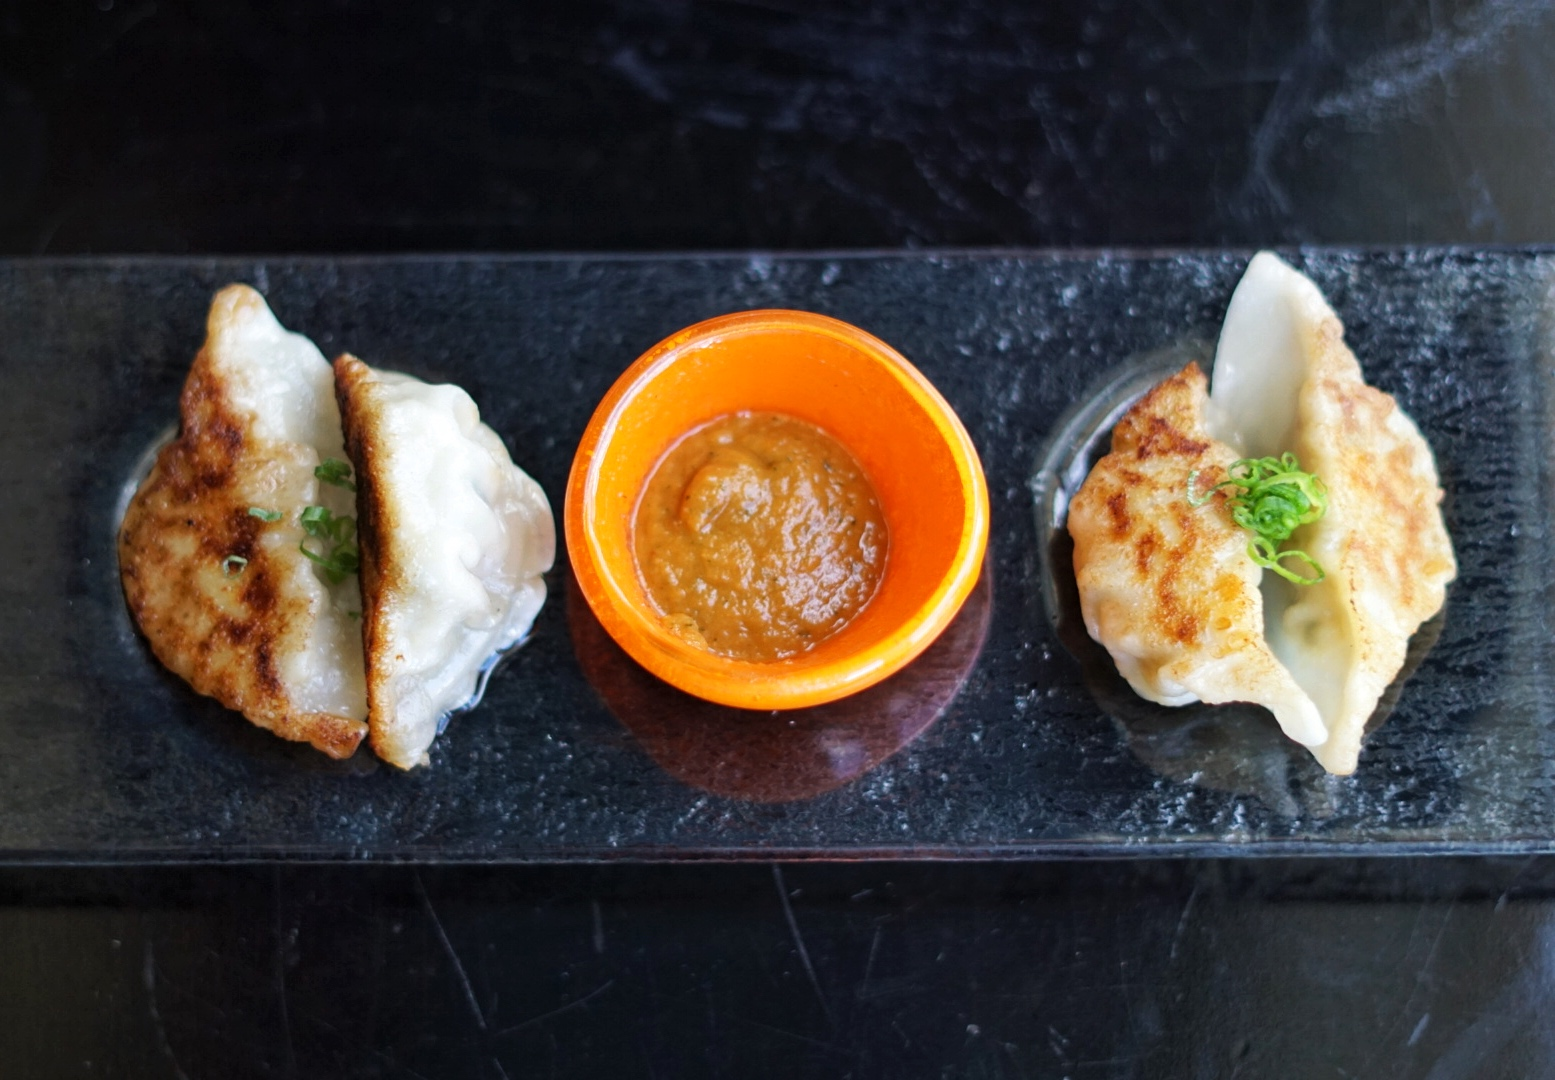 Classic Gyoza: pan-fried chicken dumplings served with a ginger chili soy sauce